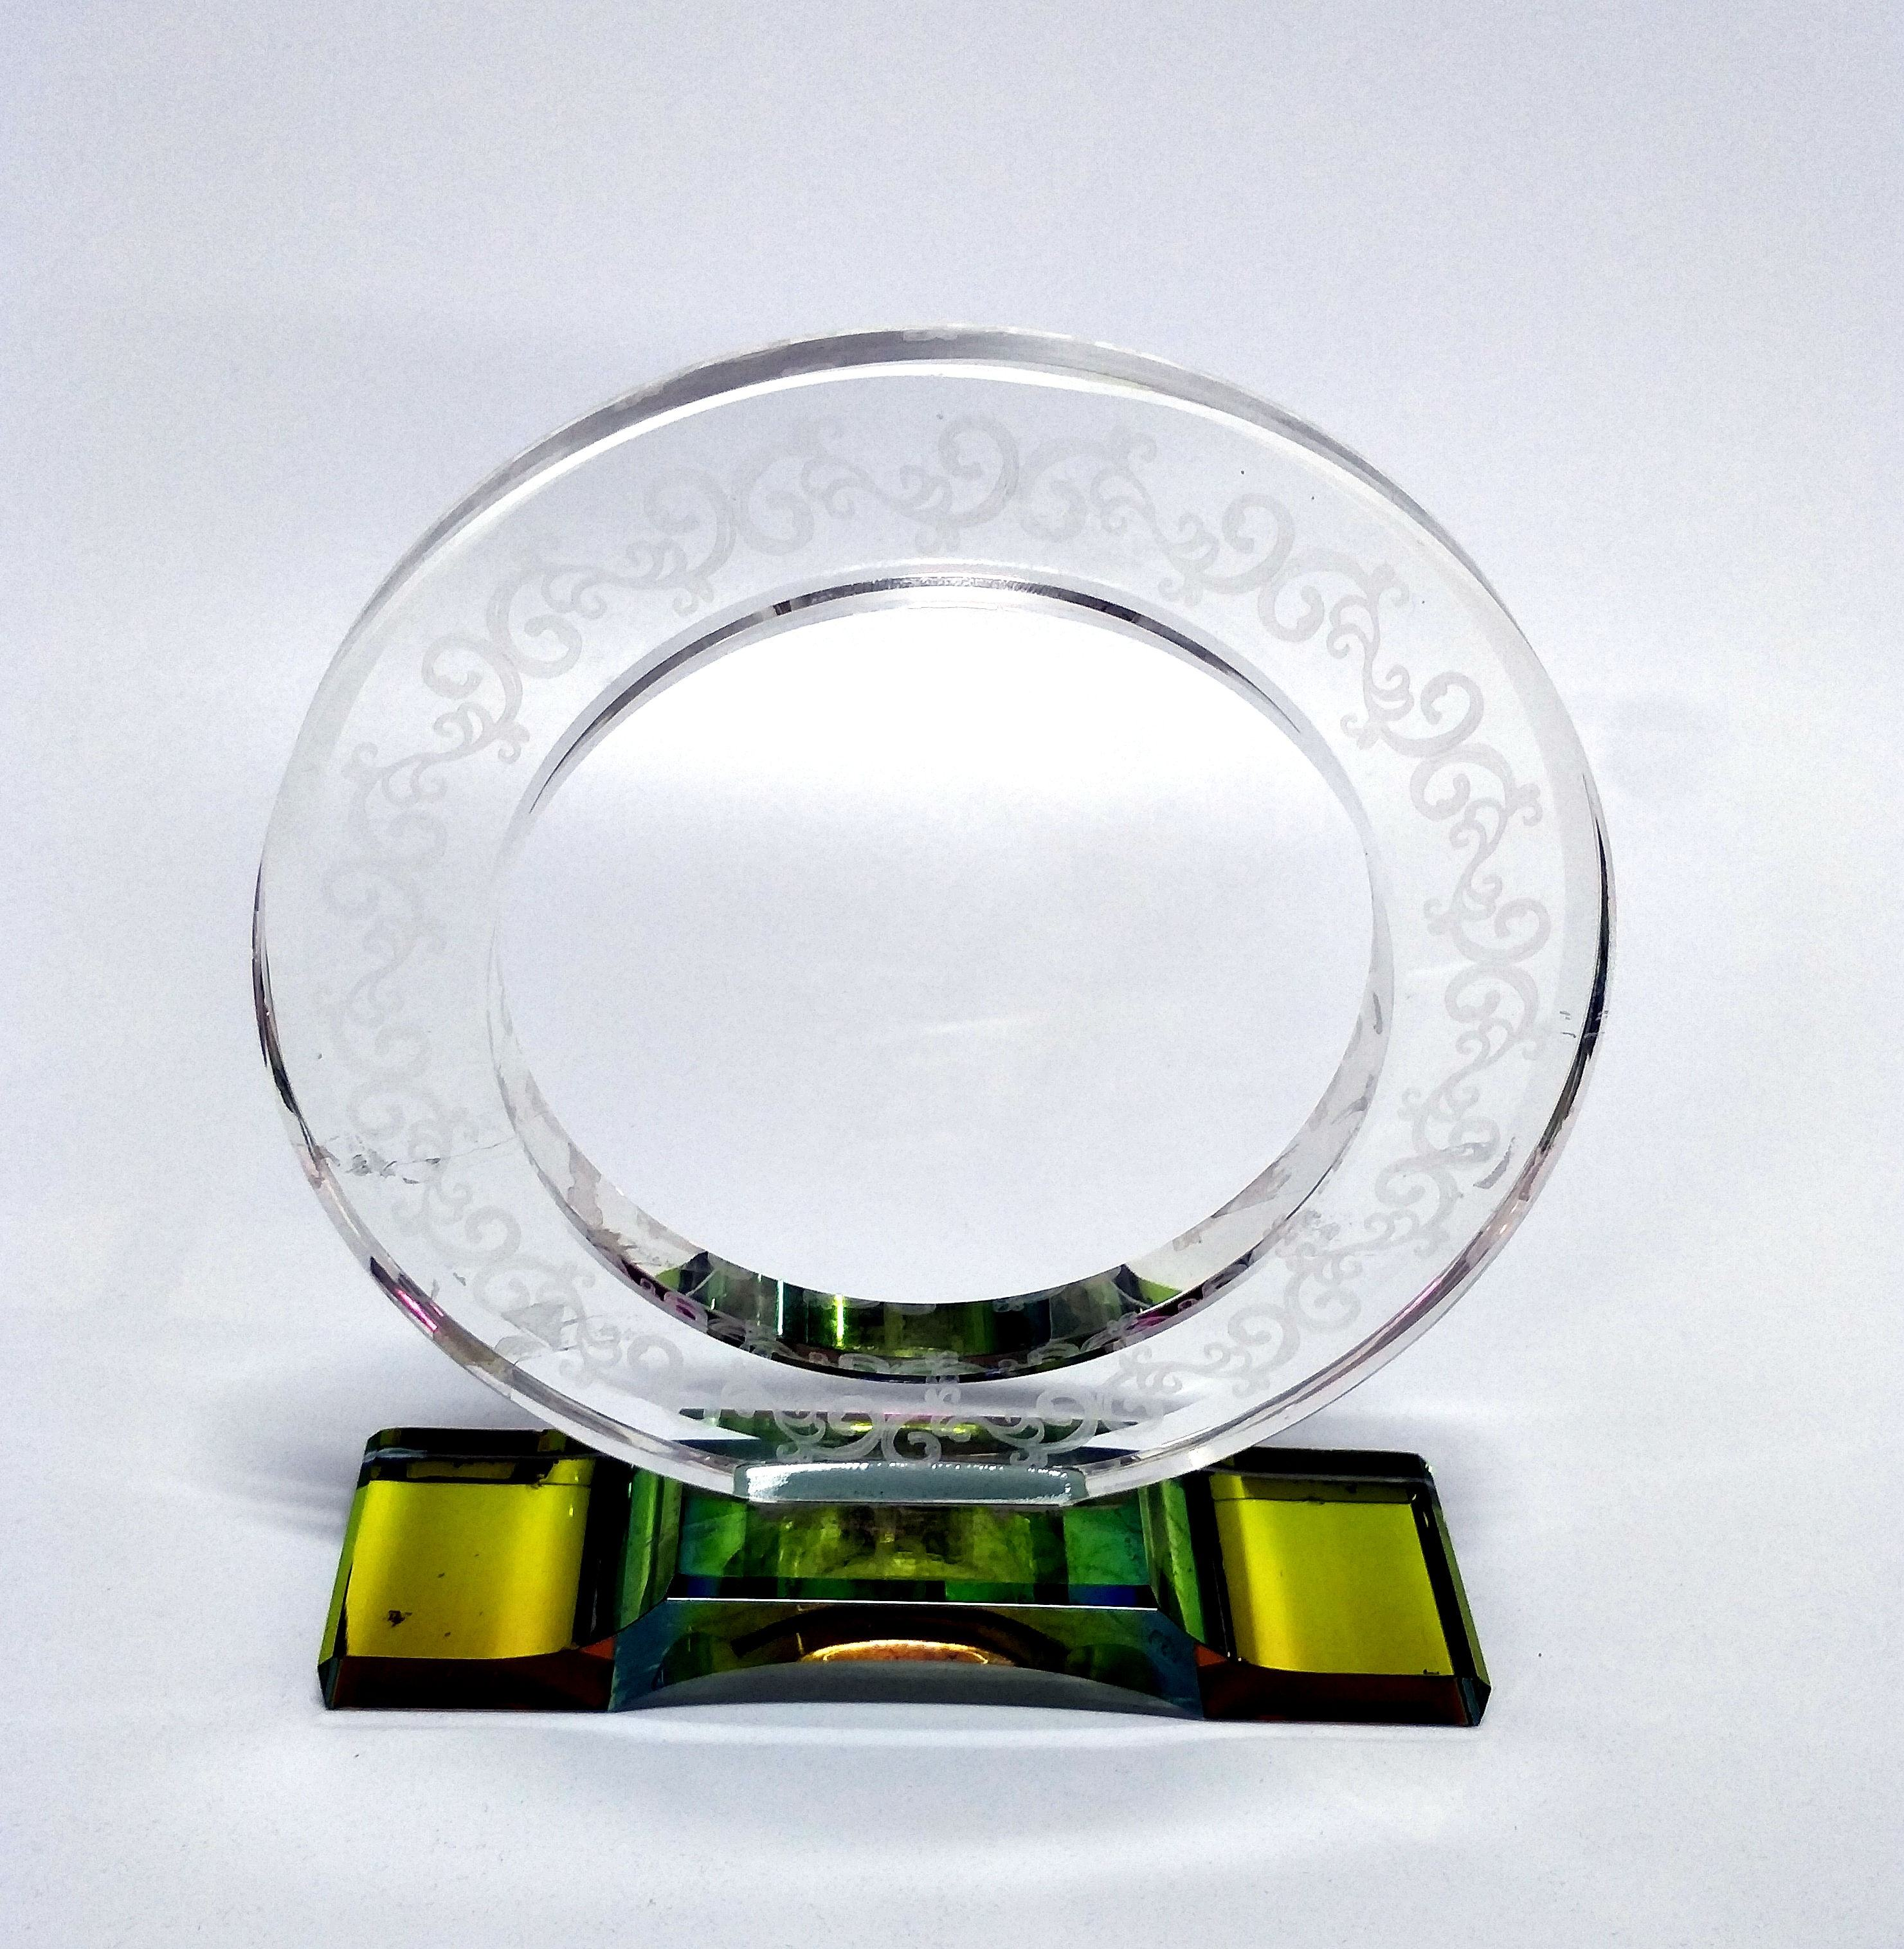 Round Ring colorful base K9K5 Crystal glass trophy award with sandblasting decorative pattern figured glass